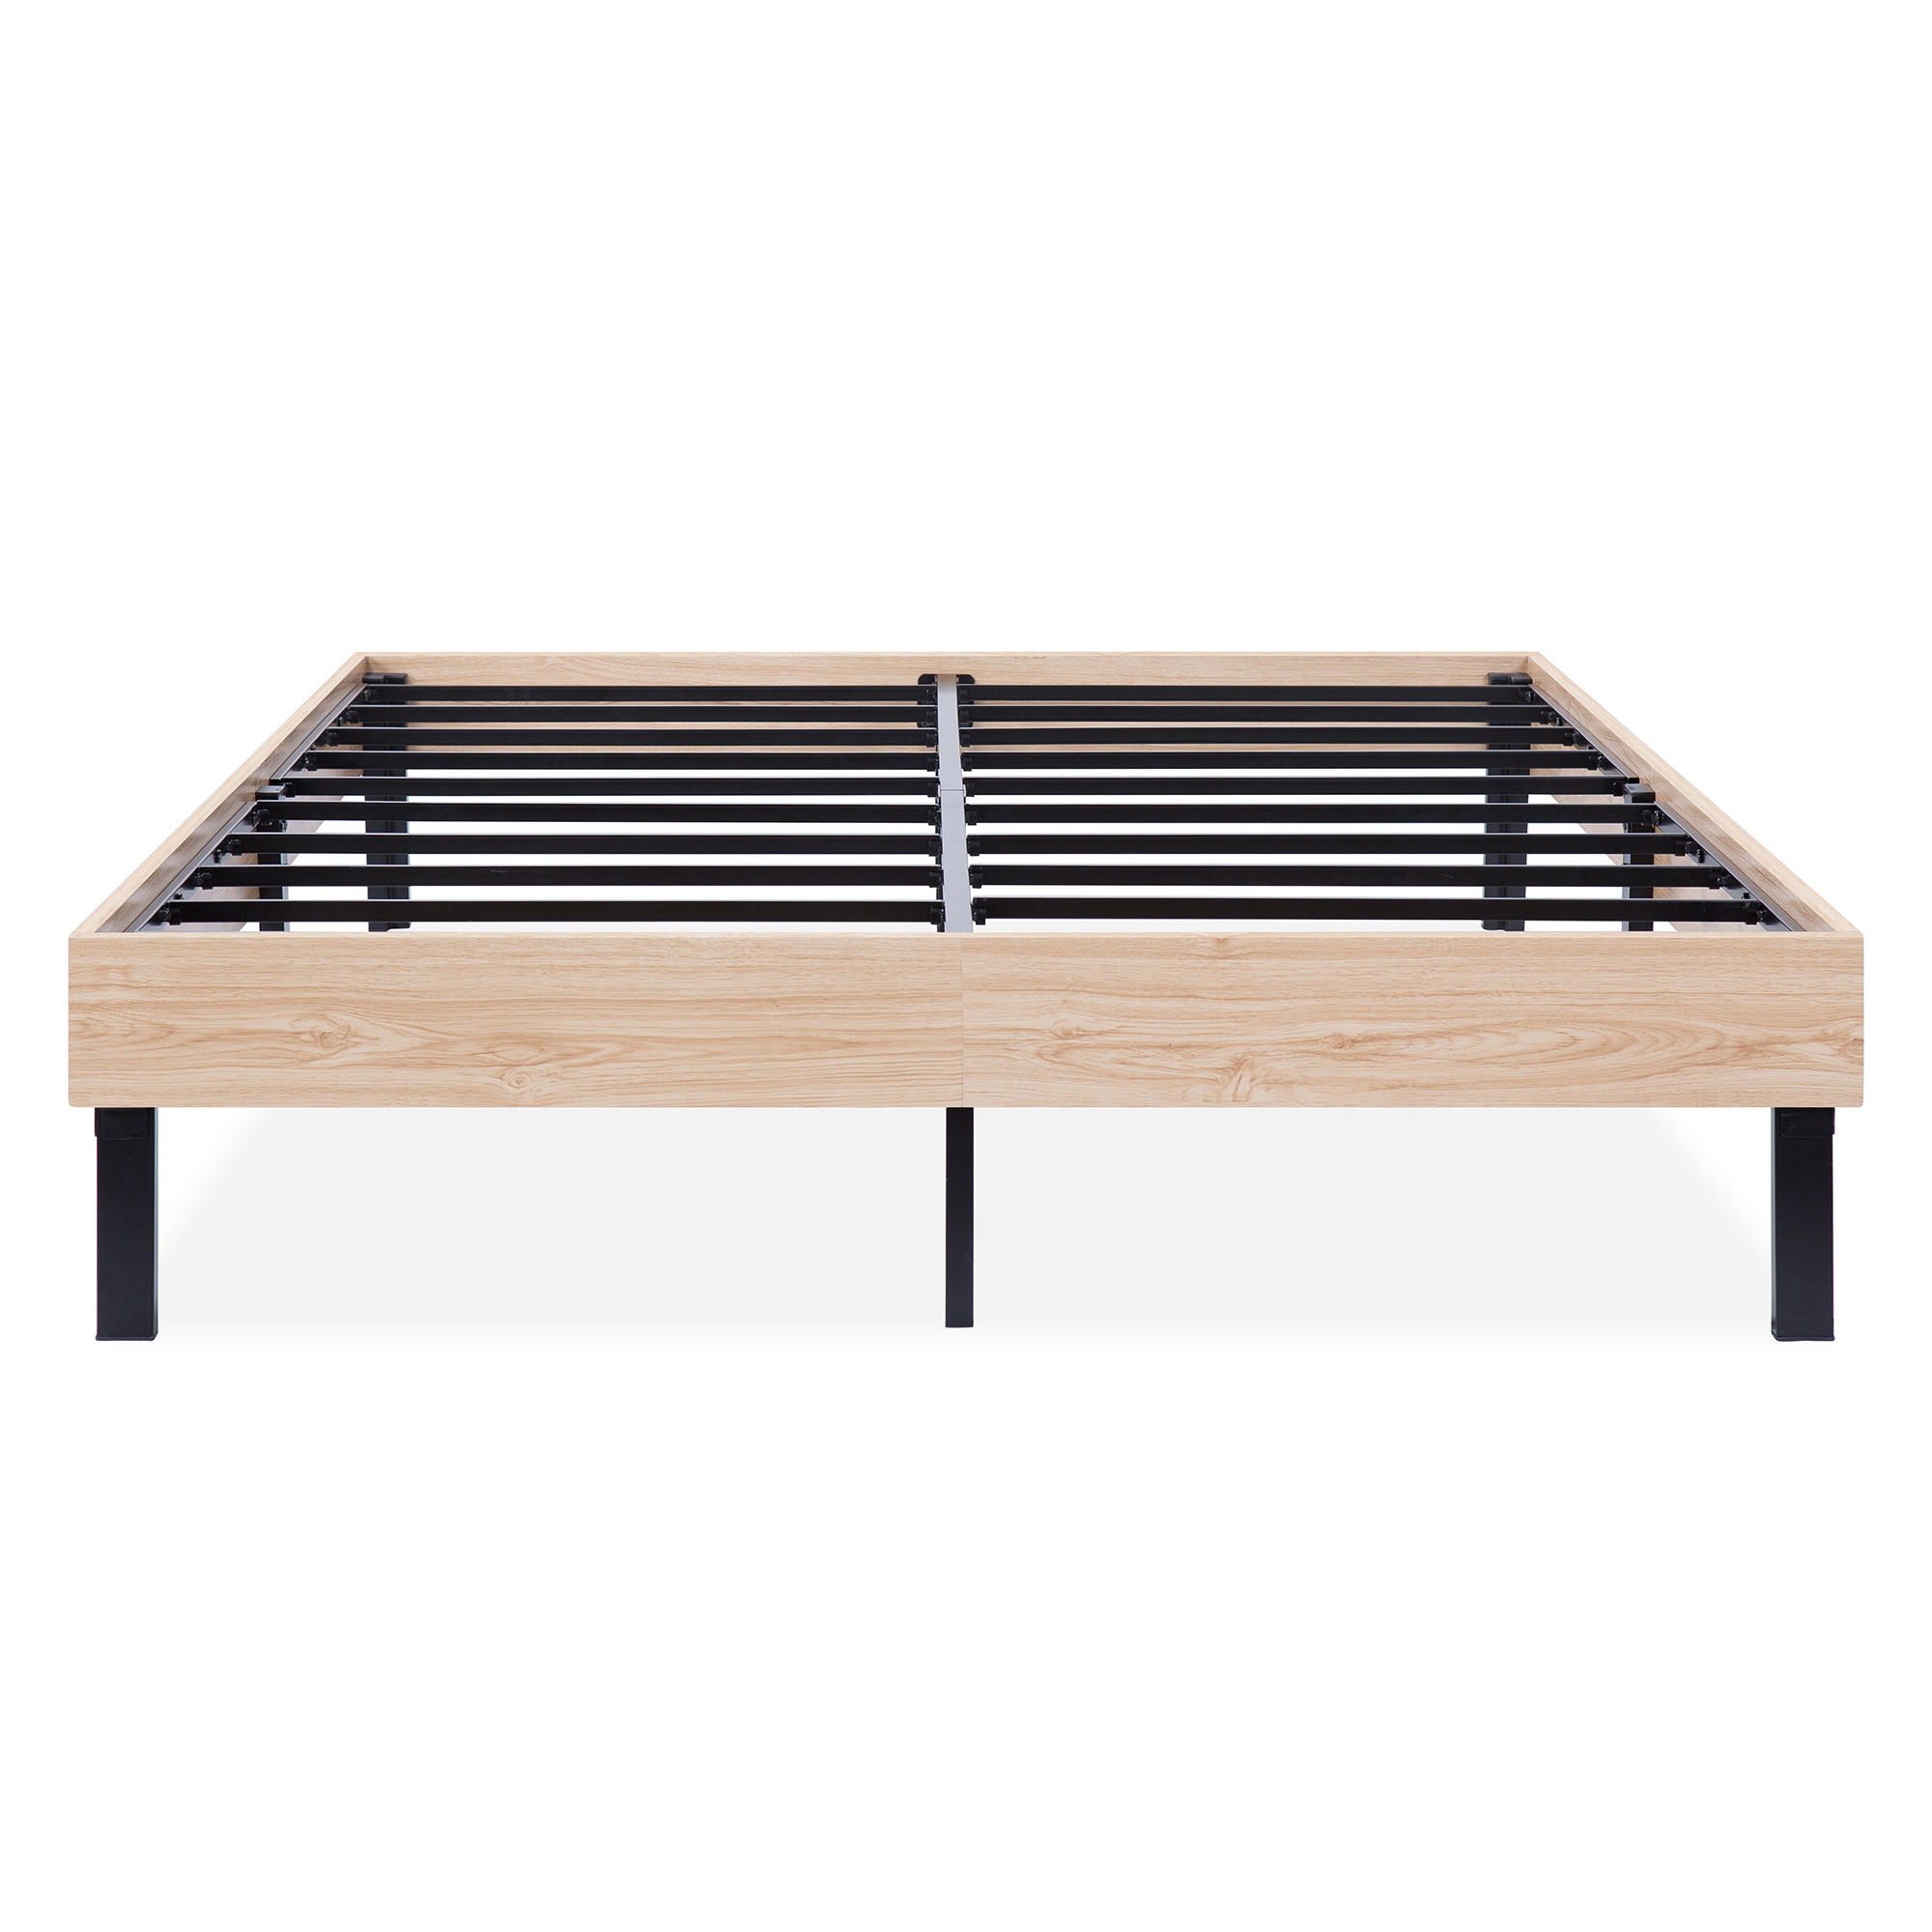 GranRest 14 Inch Classic Natural Wood Finished Platform Bed Frame   Dura Steel Slat Support, Stylish Natural by Grantec Co., Ltd